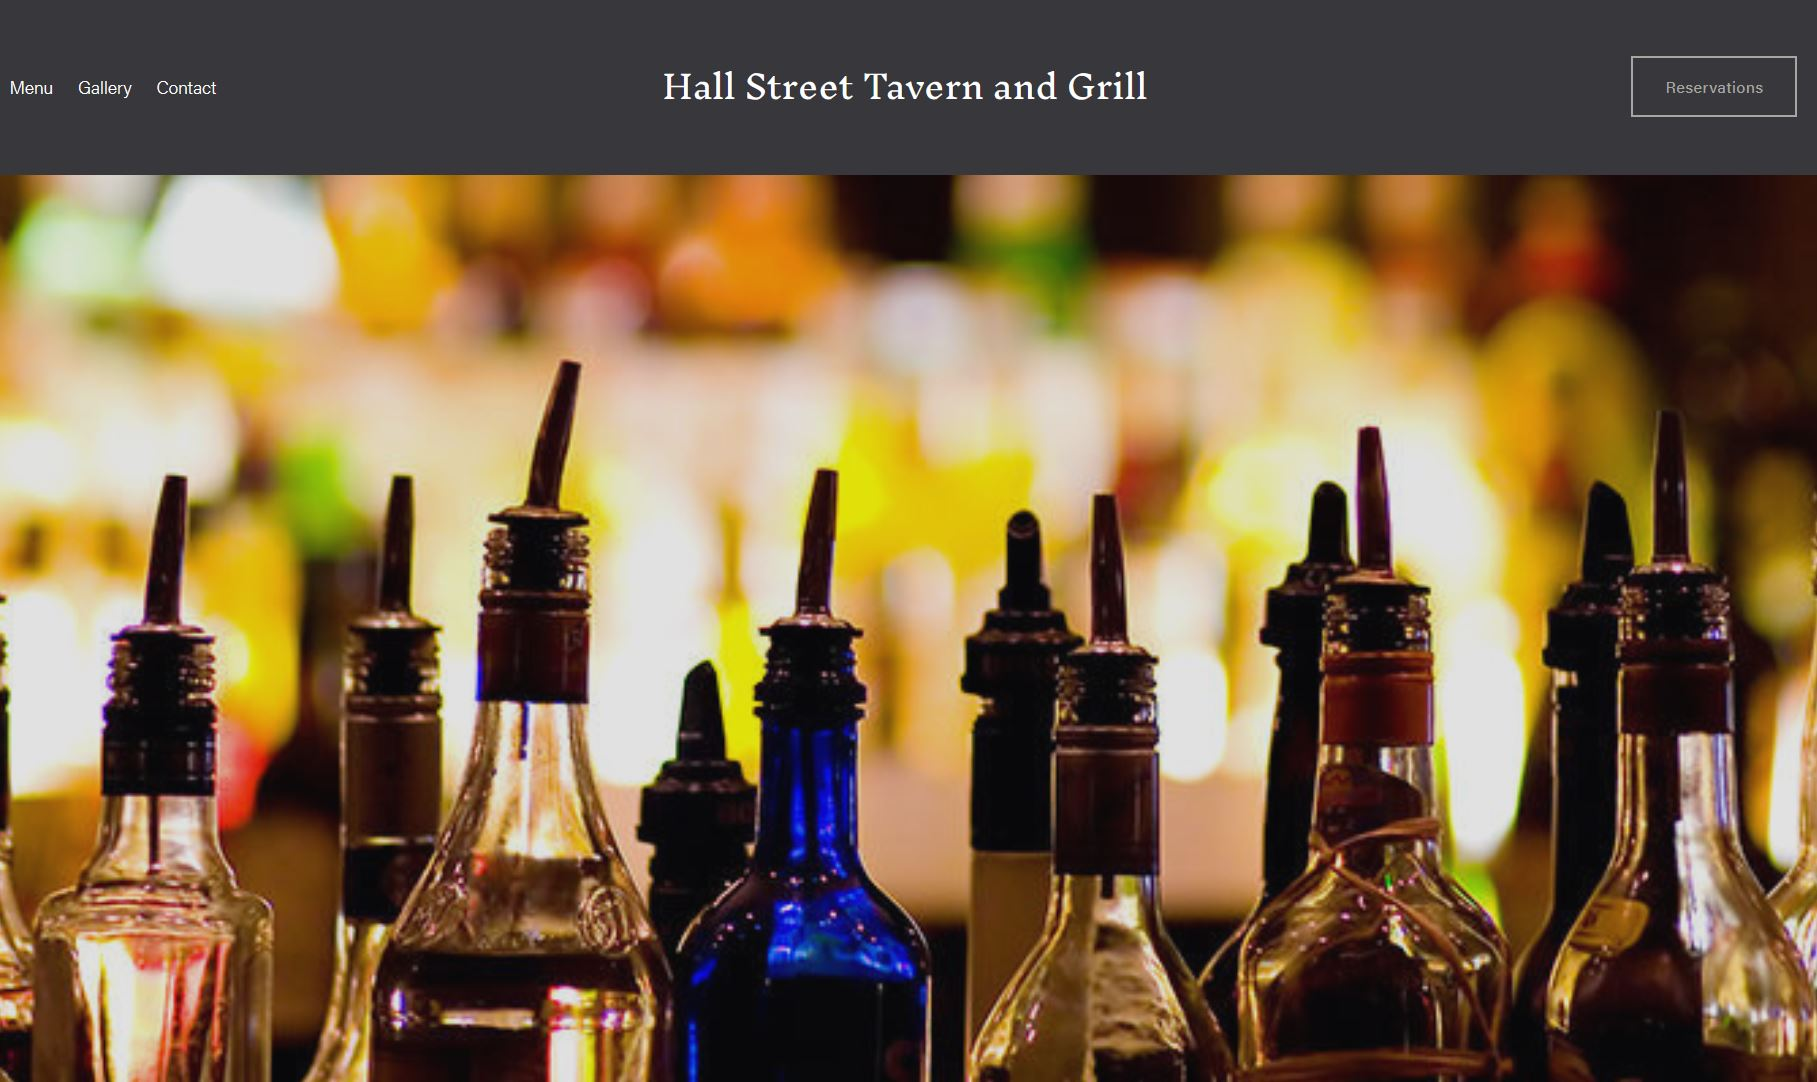 Three Feathers wines are now proudly poured at Hall Street Tavern and Grill in downtown Beaverton, Oregon.